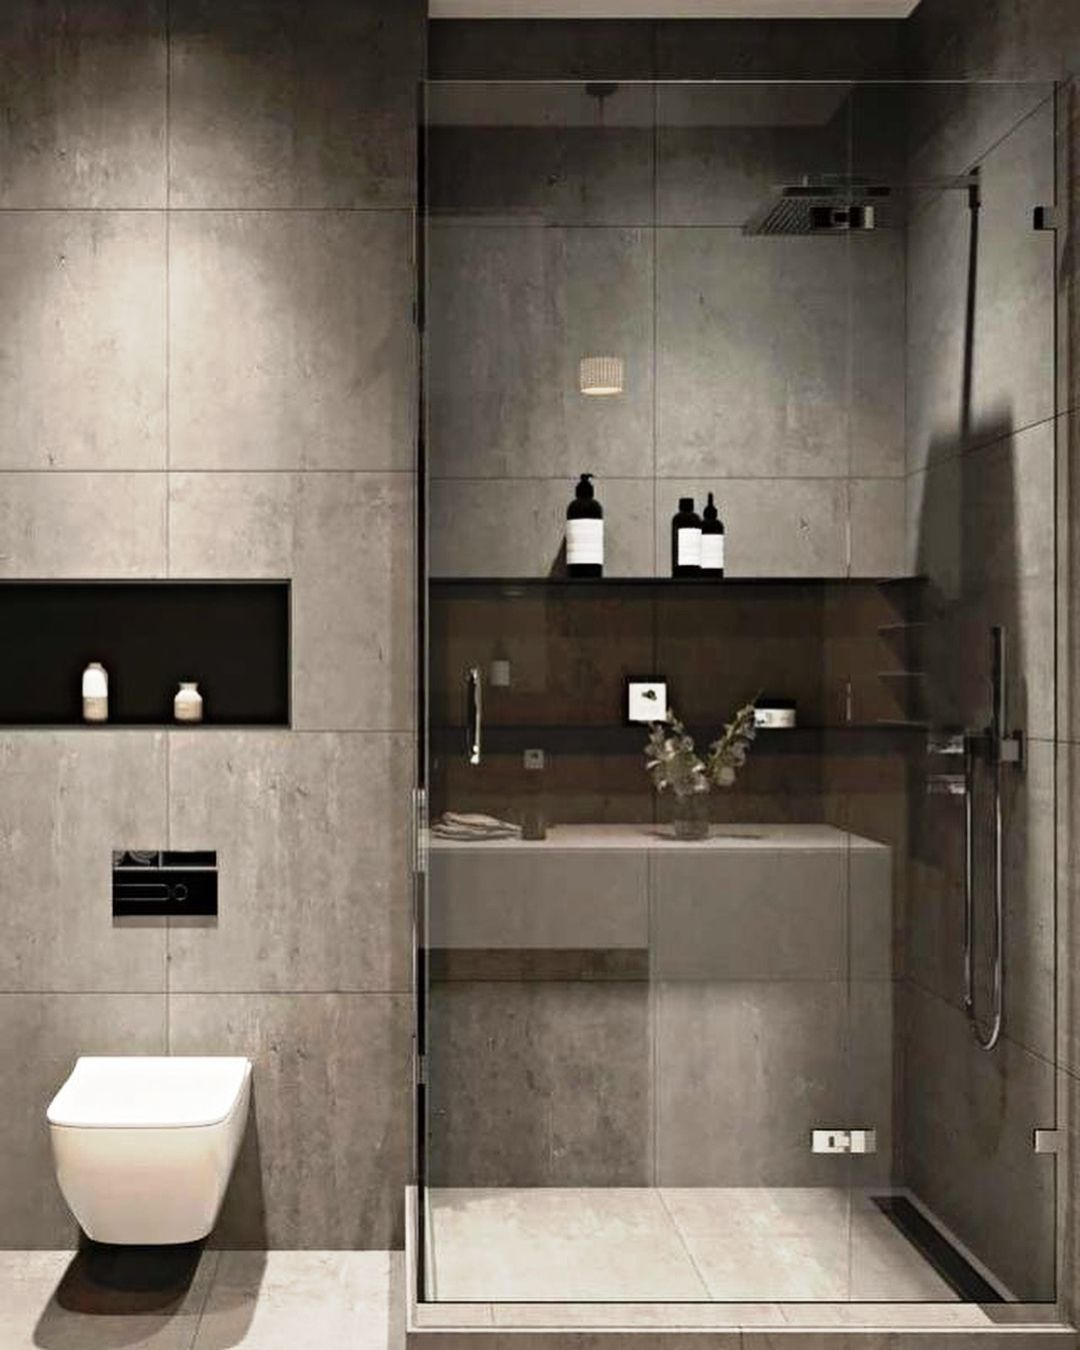 Upgrade Your House With Modern Minimalist Bathroom Design Ideas That Will Impress Your Guest Snapshot Magazine Minimalist Bathroom Design Small Bathroom Renovations Small Bathroom Remodel